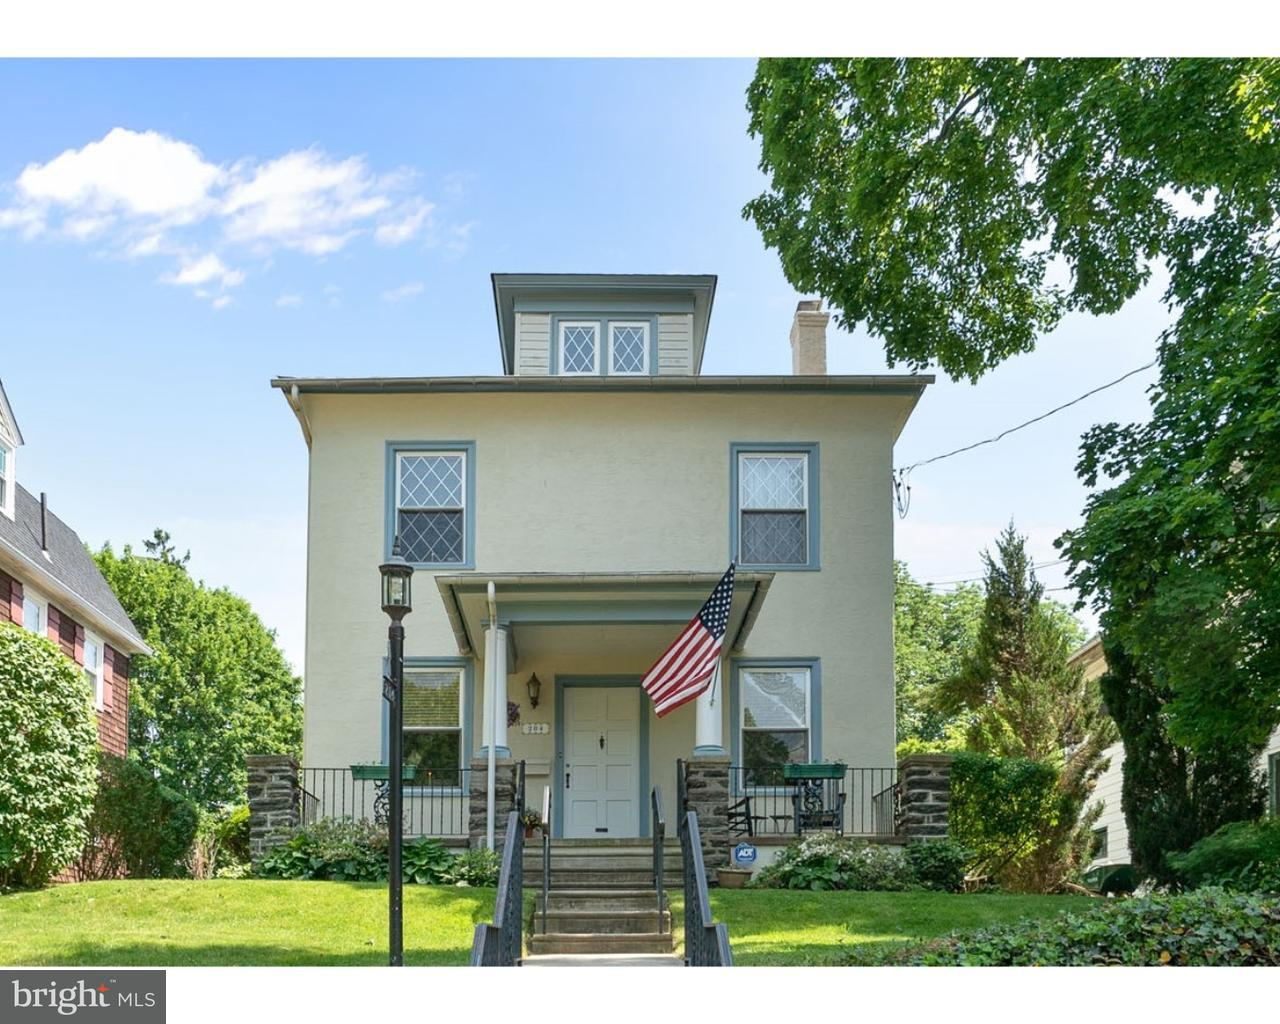 204 HILLSIDE AVE, JENKINTOWN - Listed at $449,000, JENKINTOWN